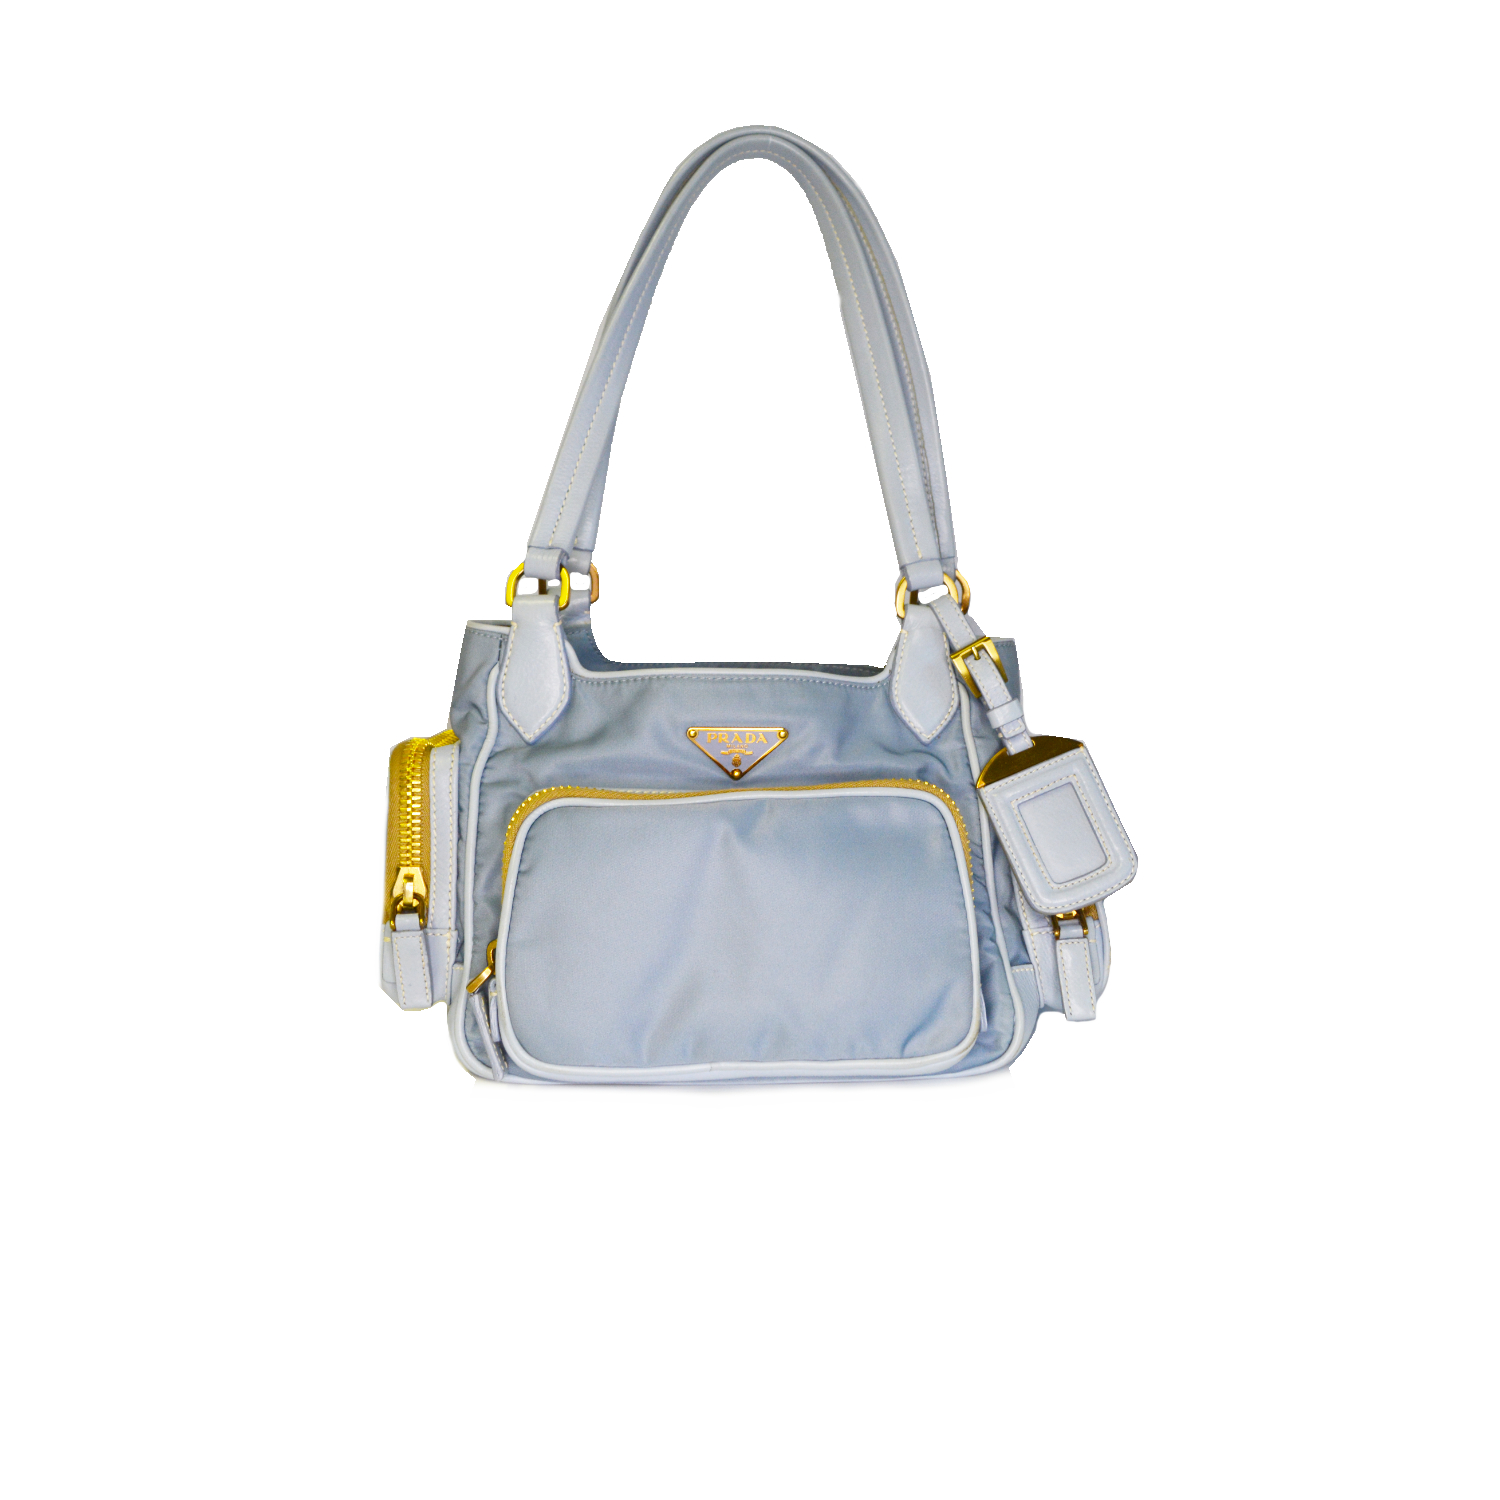 Vintage Prada Nylon Bowler Bag in Baby Blue and Gold | NITRYL